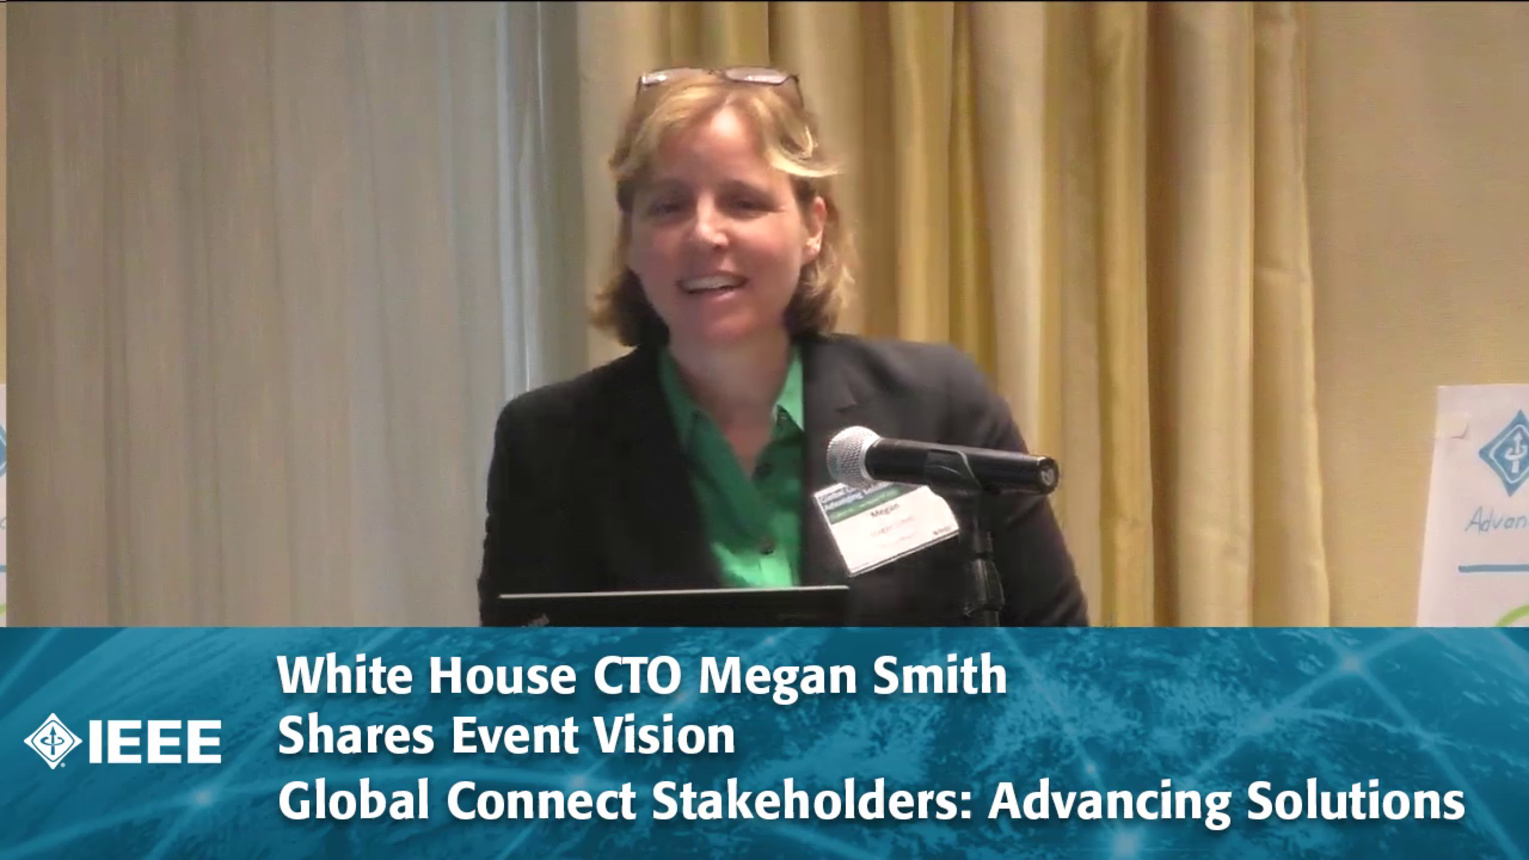 White House CTO Megan Smith Shares Event Vision - Global Connect Stakeholders: Advancing Solutions